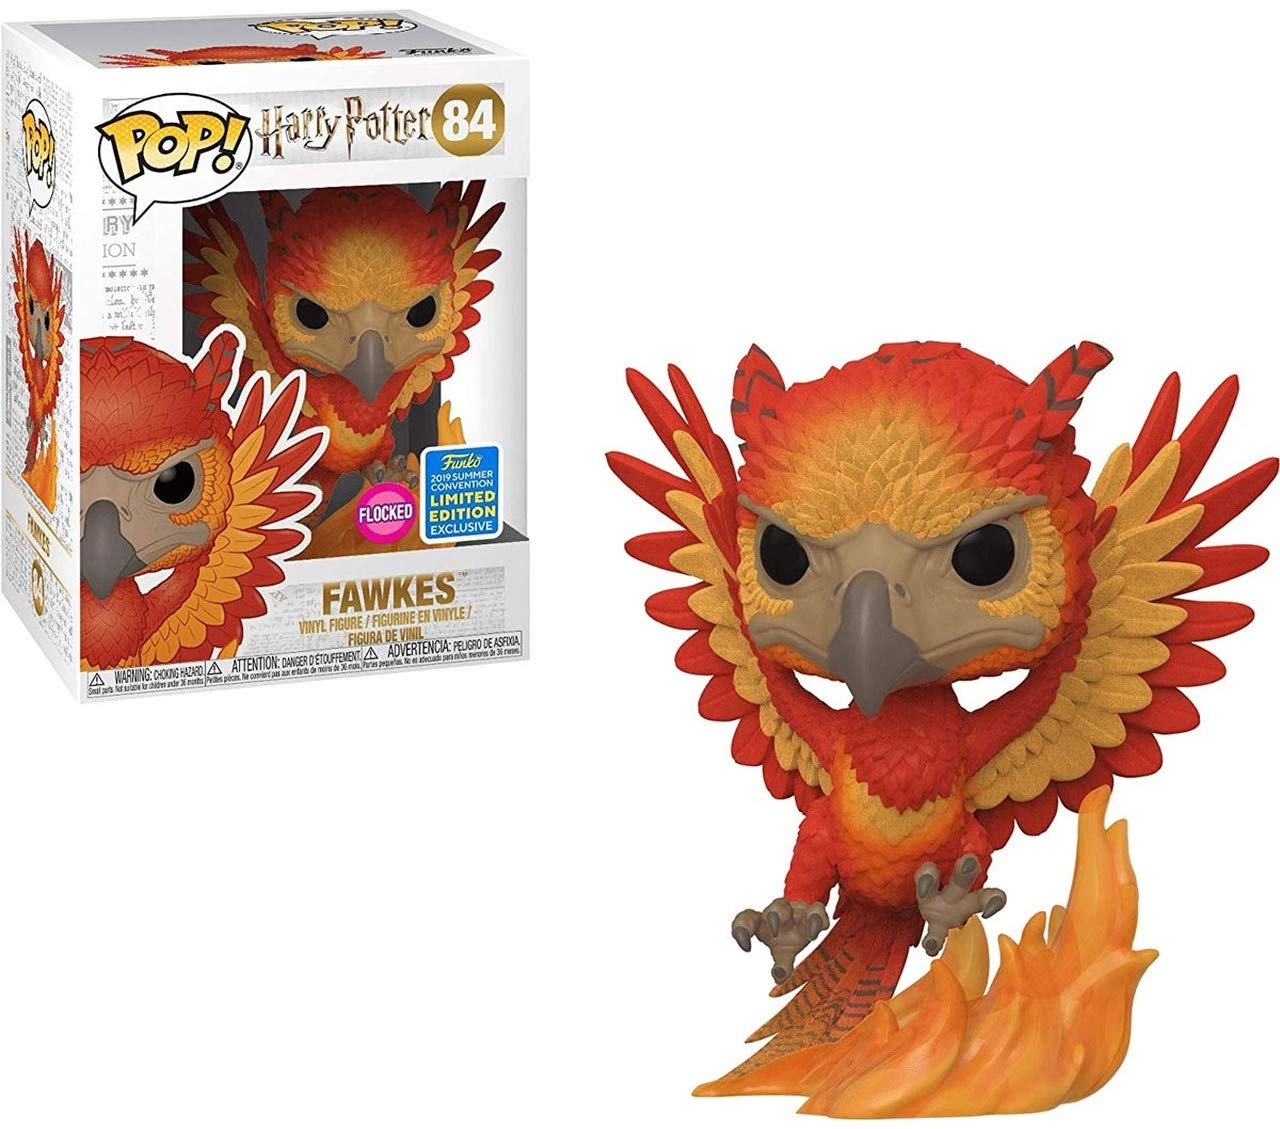 Funko Pop Fawkes (Flocked) – 2019 SDCC (Harry Potter 84) Funko Pop Harry Potter